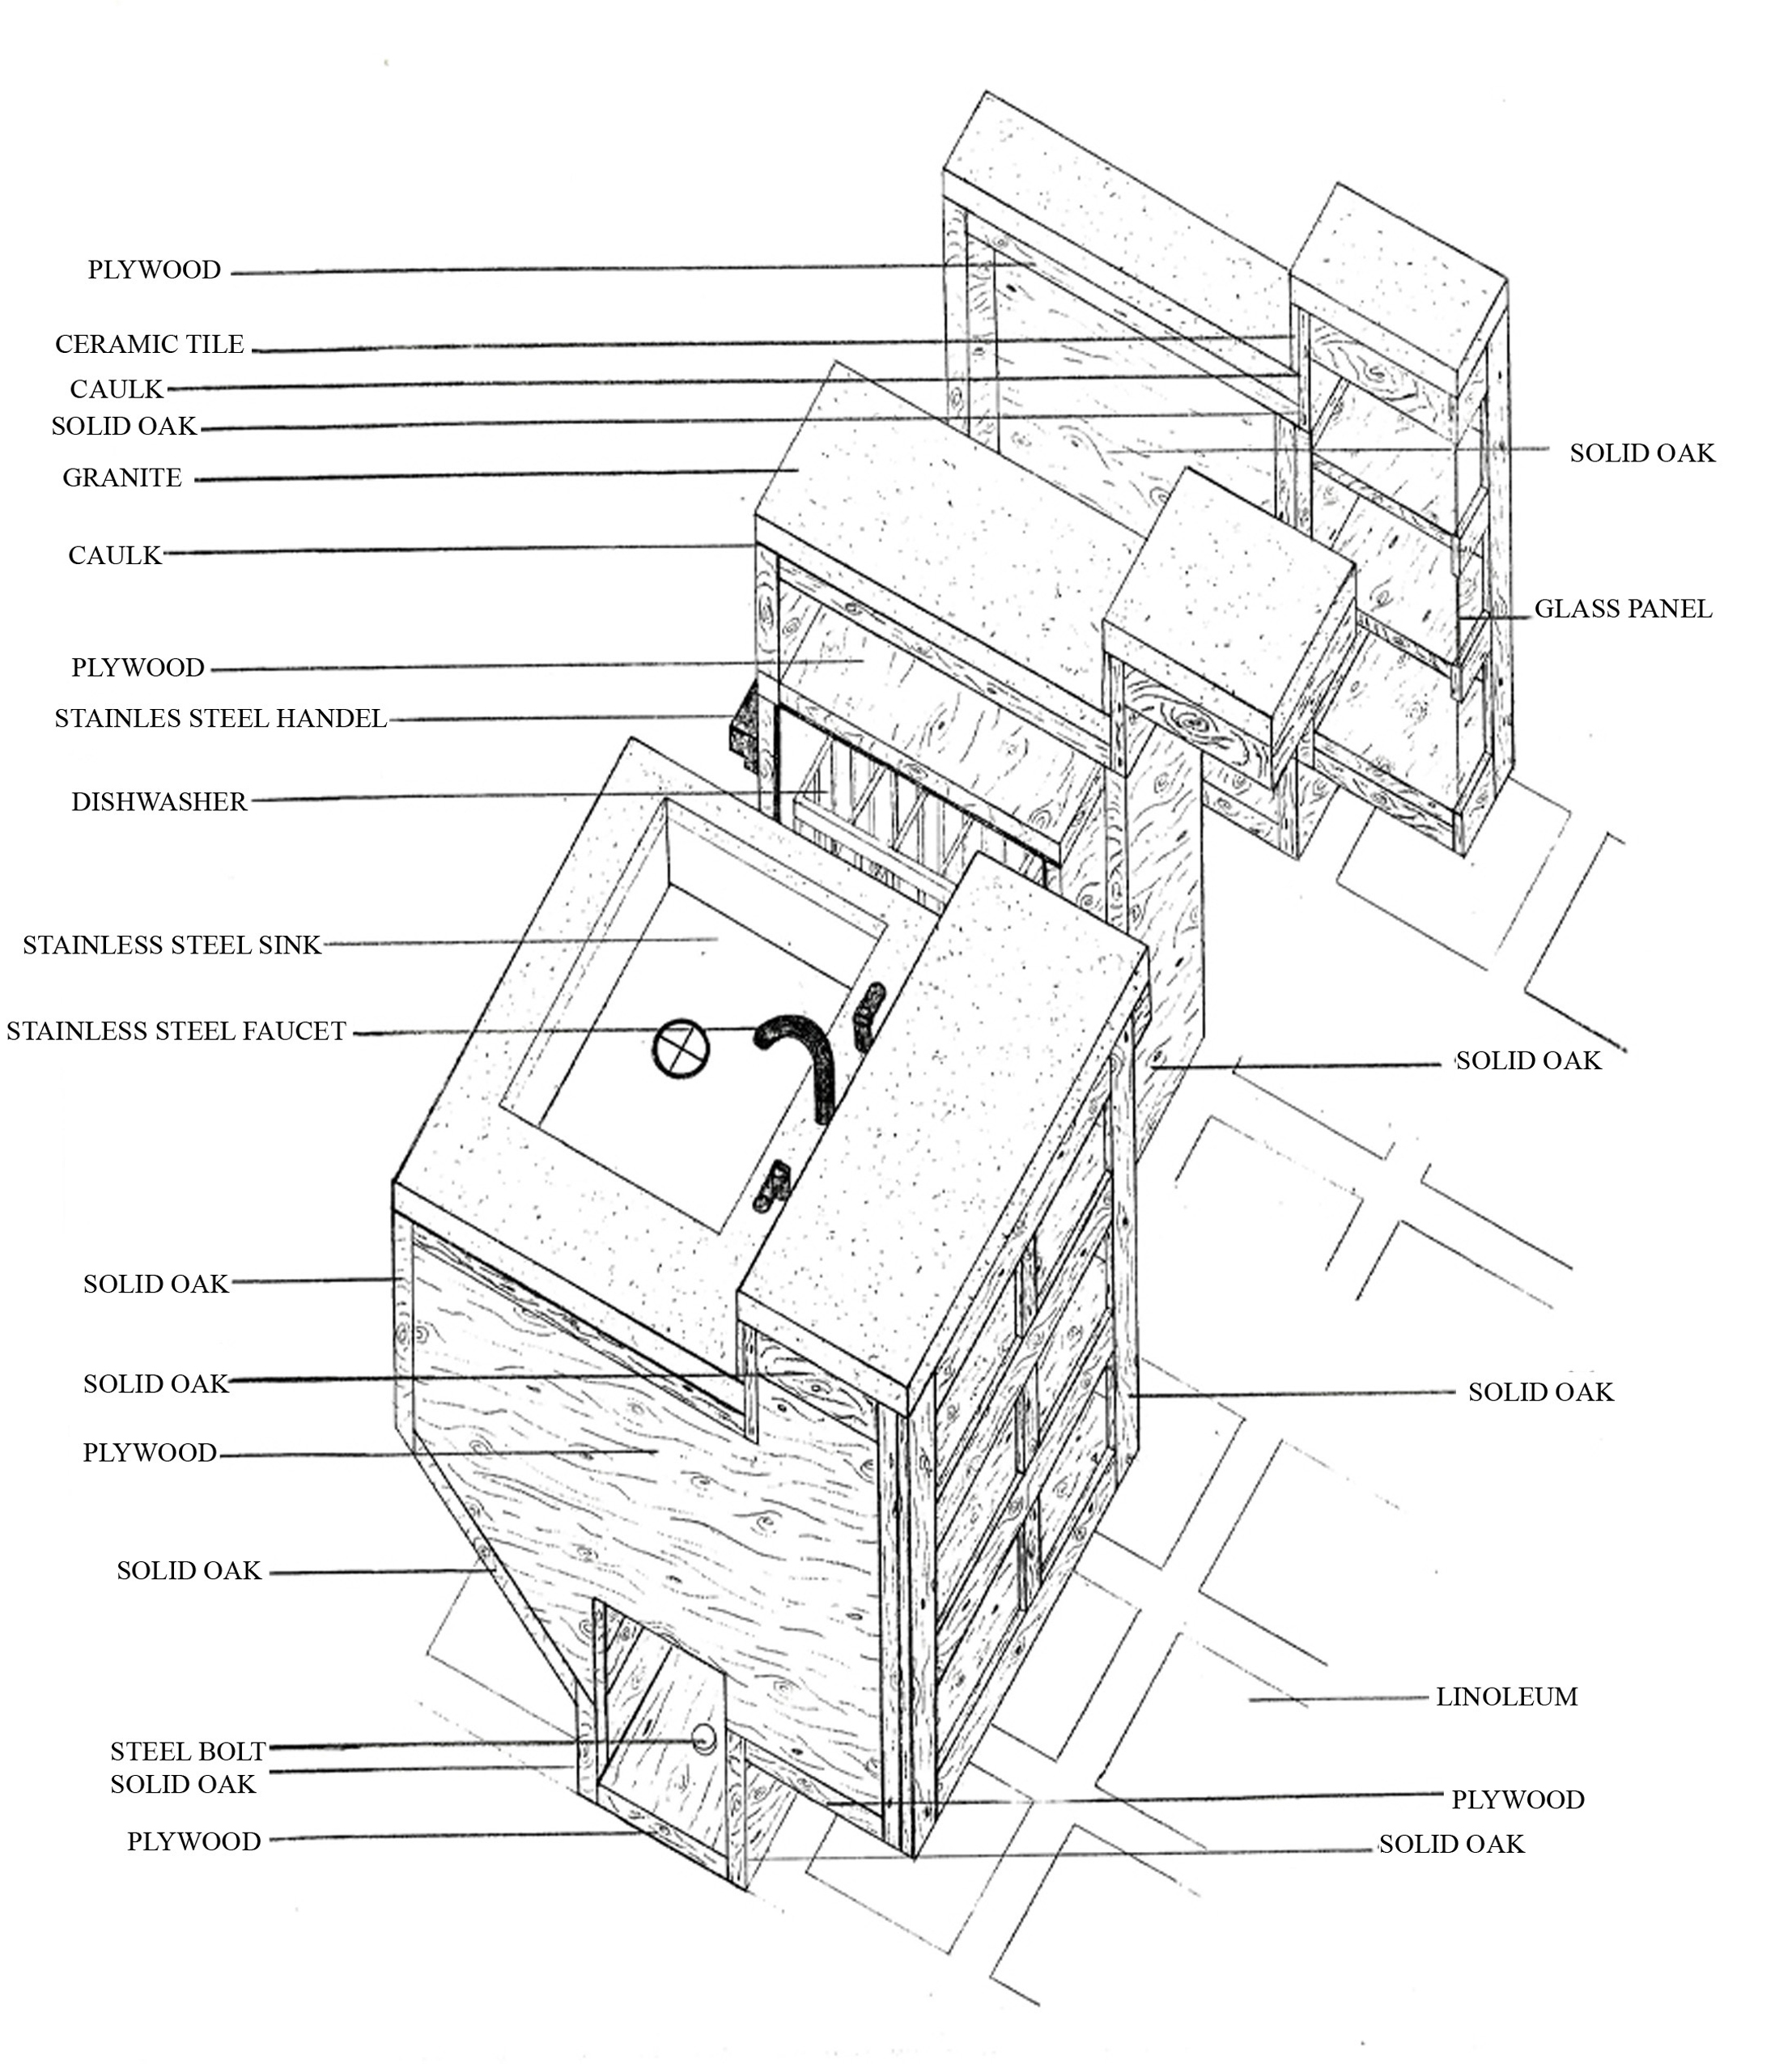 Kitchen Cabinet Drawings: Cabinet Detail Drawing At GetDrawings.com